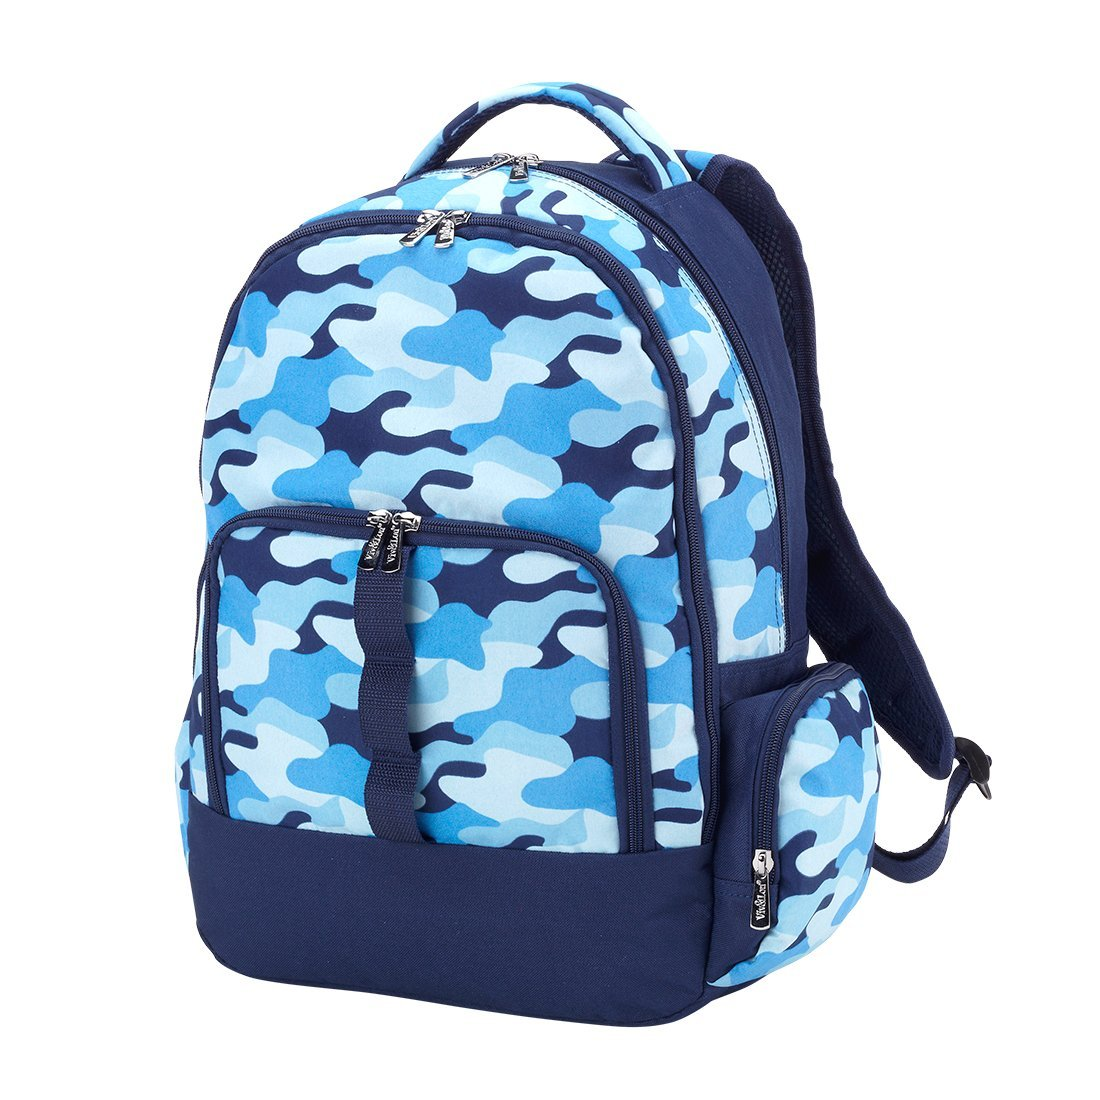 Backpacks with Designs: Amazon.com